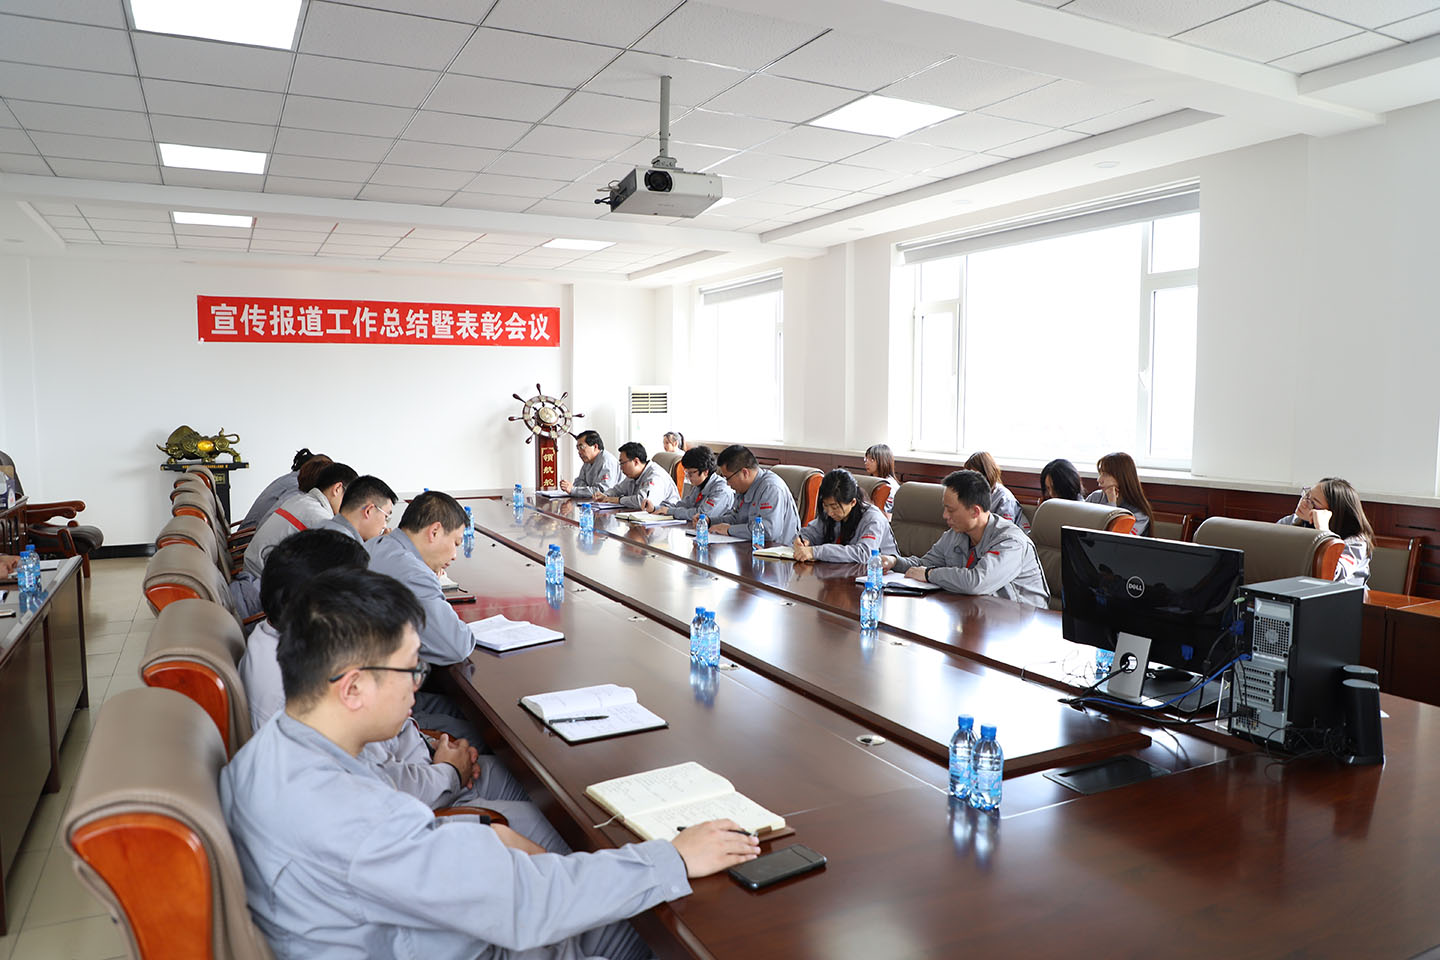 The company held the summing up and commendation meeting of the publicity and reporting work in 2020